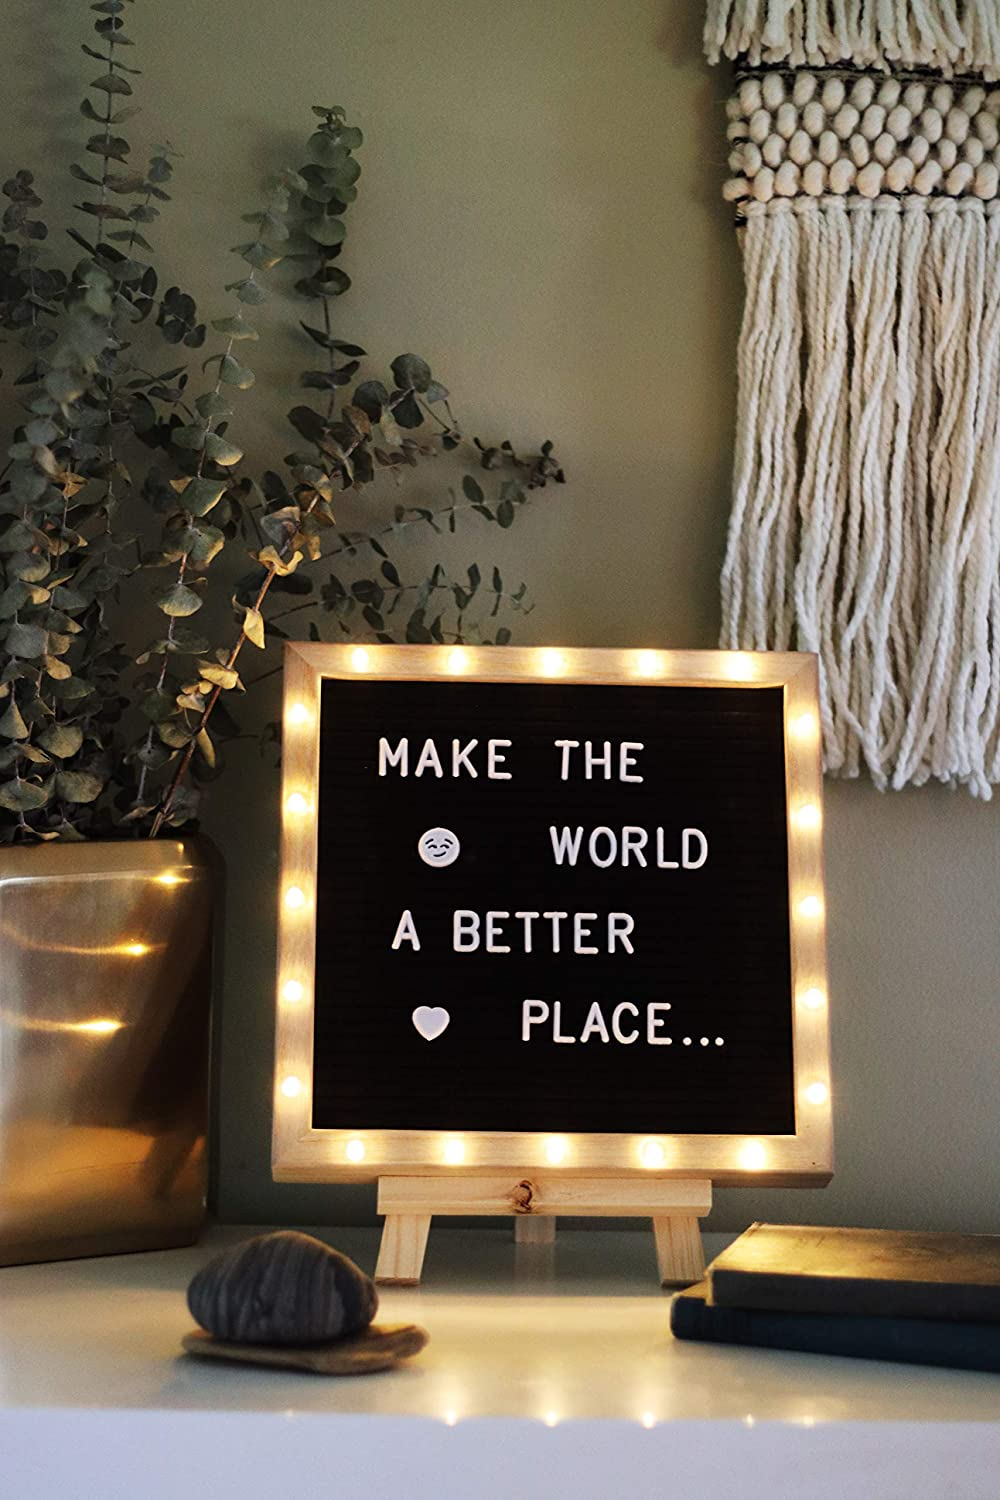 Amazon.com : Premium Felt Letter Board with 20 Built-in LED ...